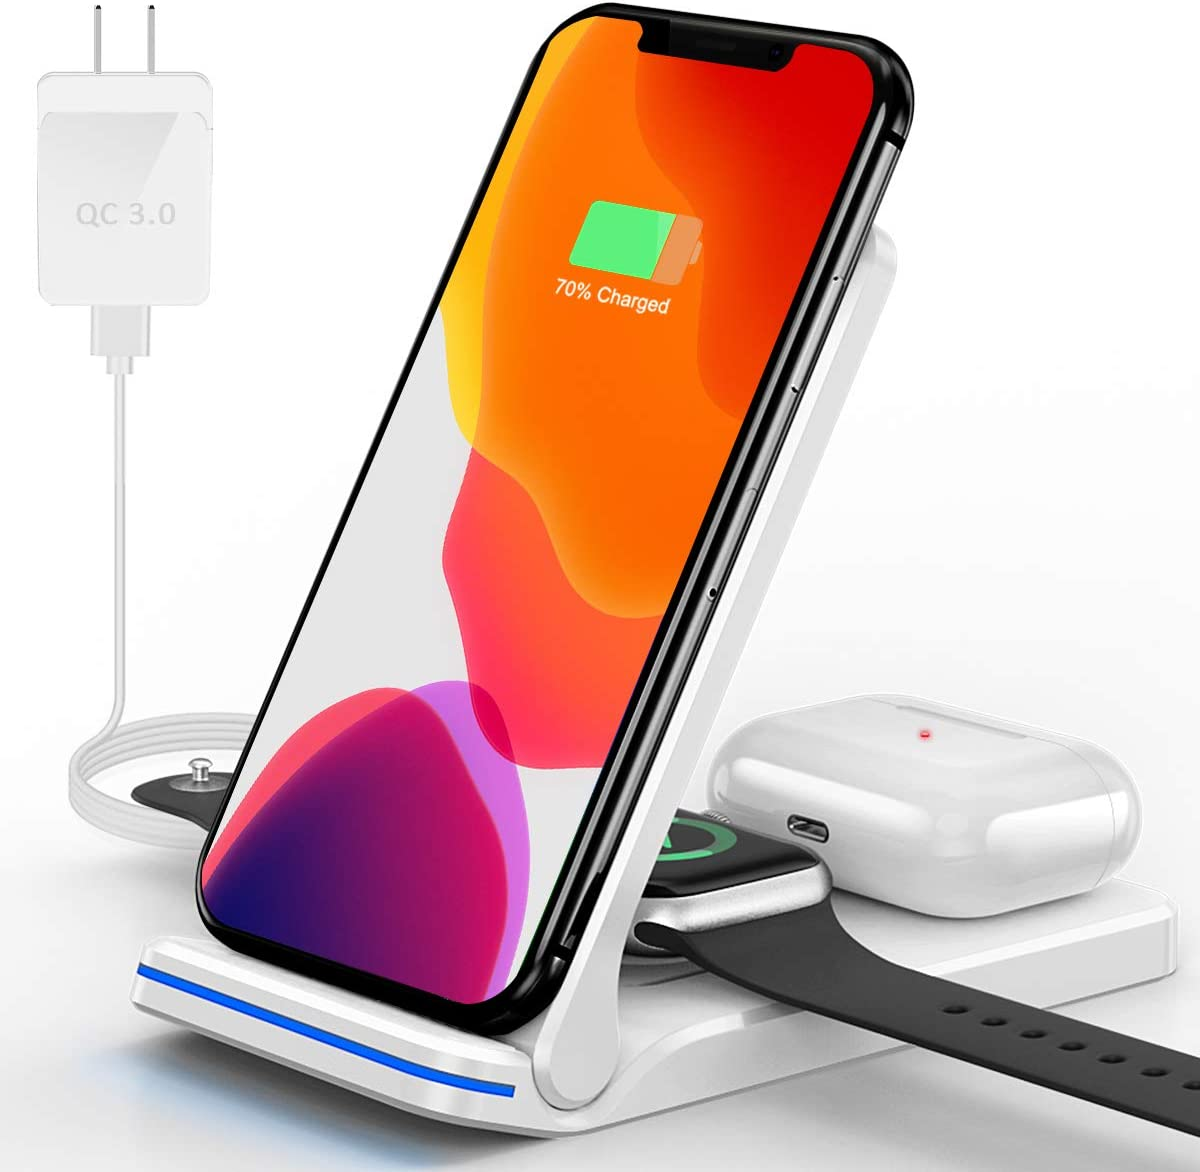 Wireless Charger, 3 in 1 Wireless Charging Station for iWatch, AirPods Pro/2, Qi Fast Wireless Charging Stand for iPhone 12/11 Series/XS MAX/XS/XR/X/8/8 Plus and All Qi-Enabled Phones (White)